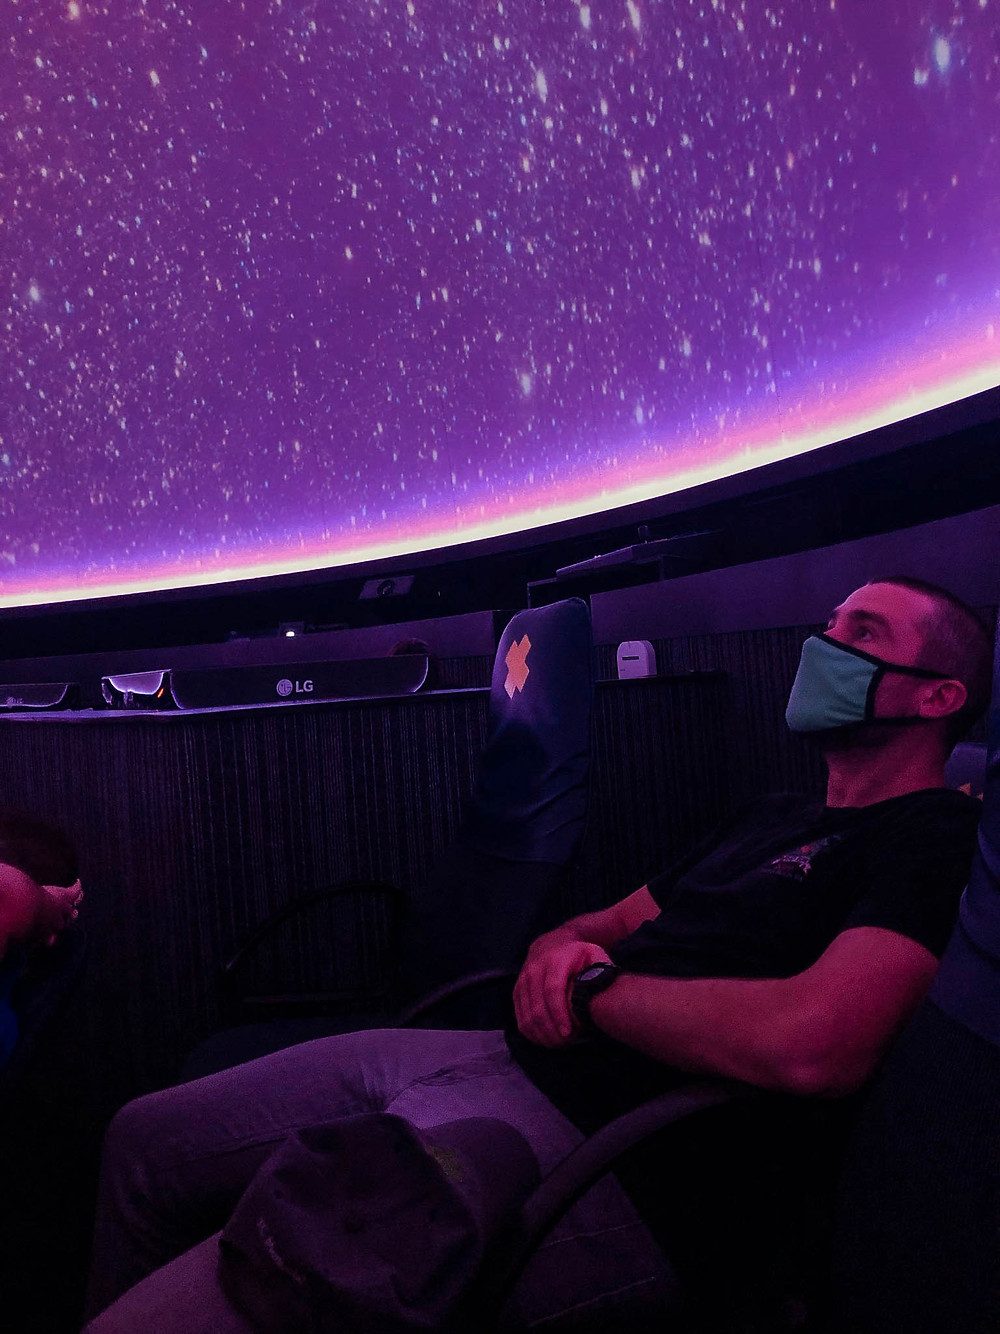 Taking in an awesome show at the planetarium...